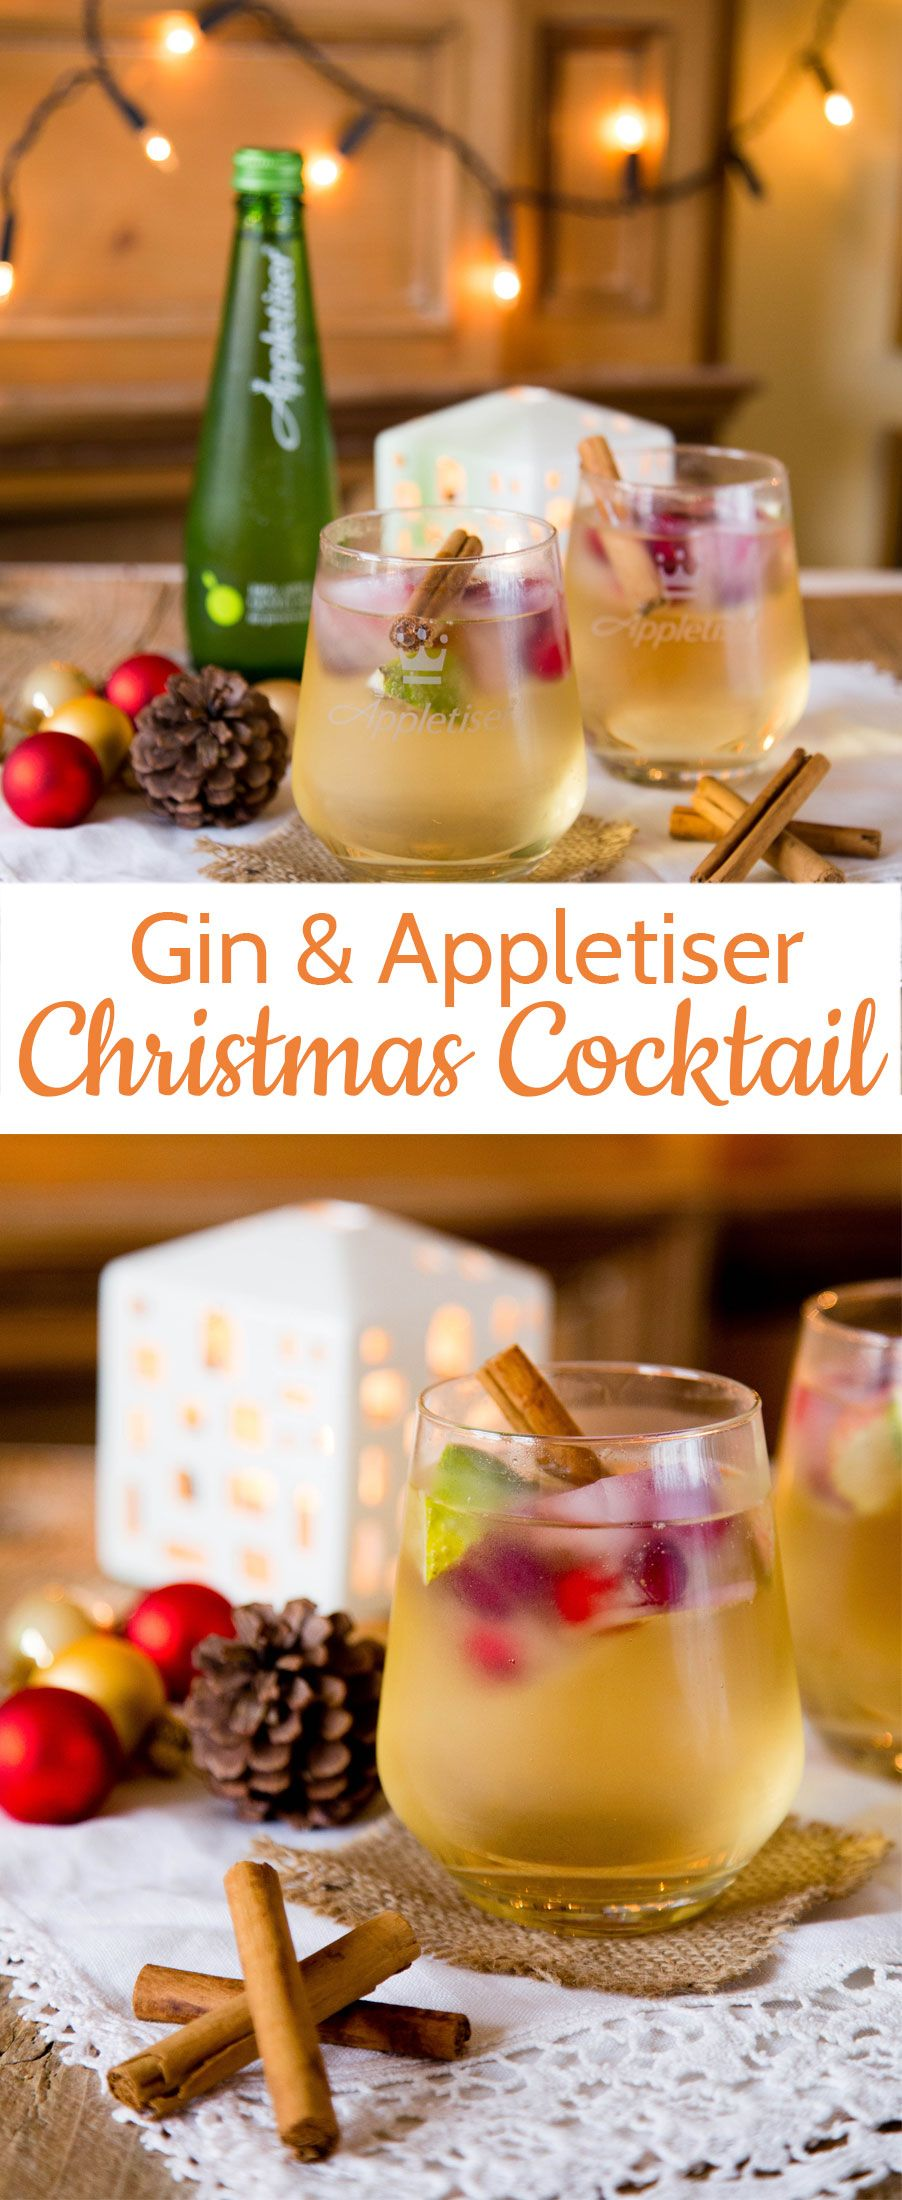 Gin & Appletiser a refreshing Christmas Cocktail | Rezept | Getränke ...